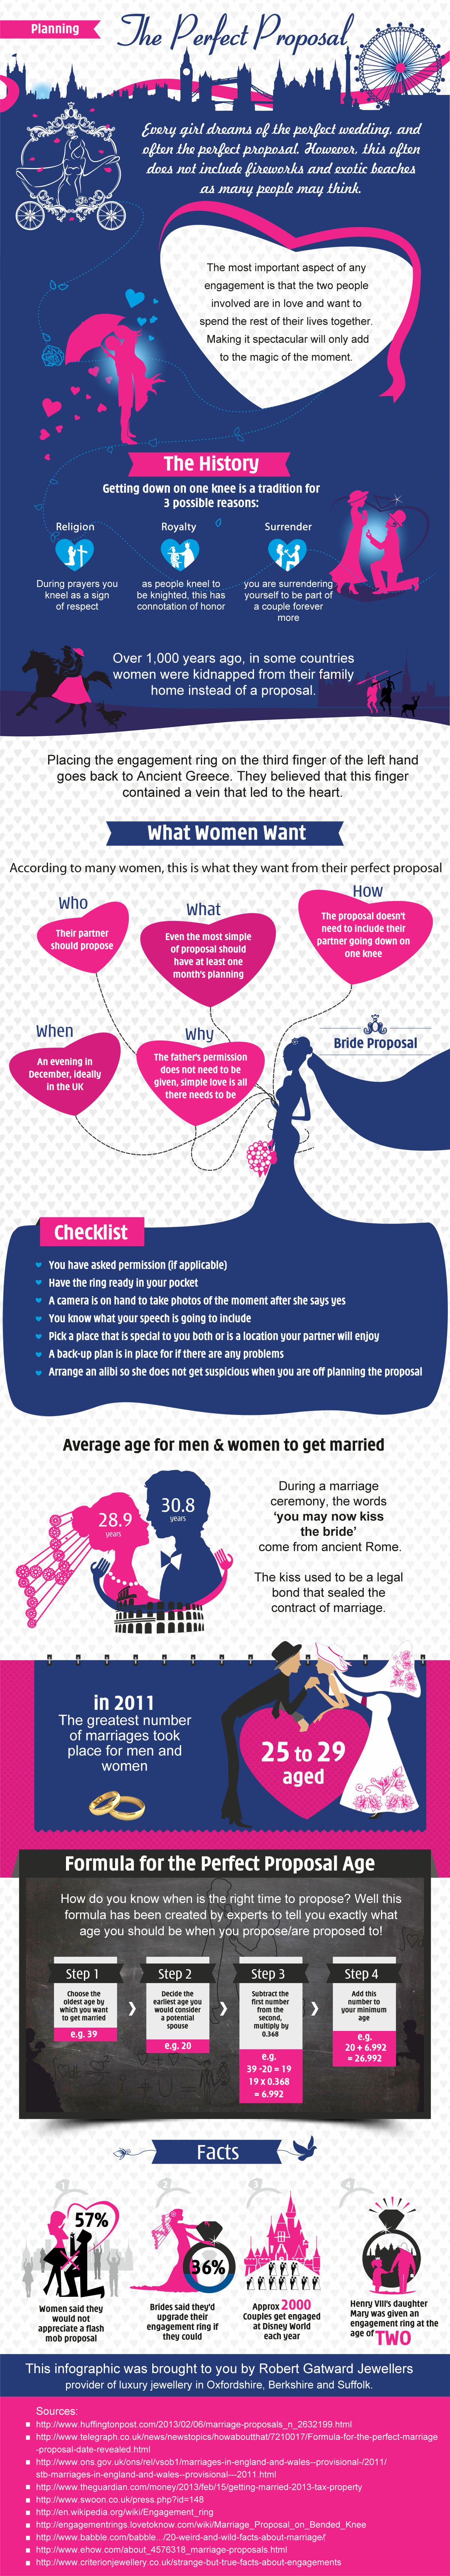 The Perfect Proposal Infographic